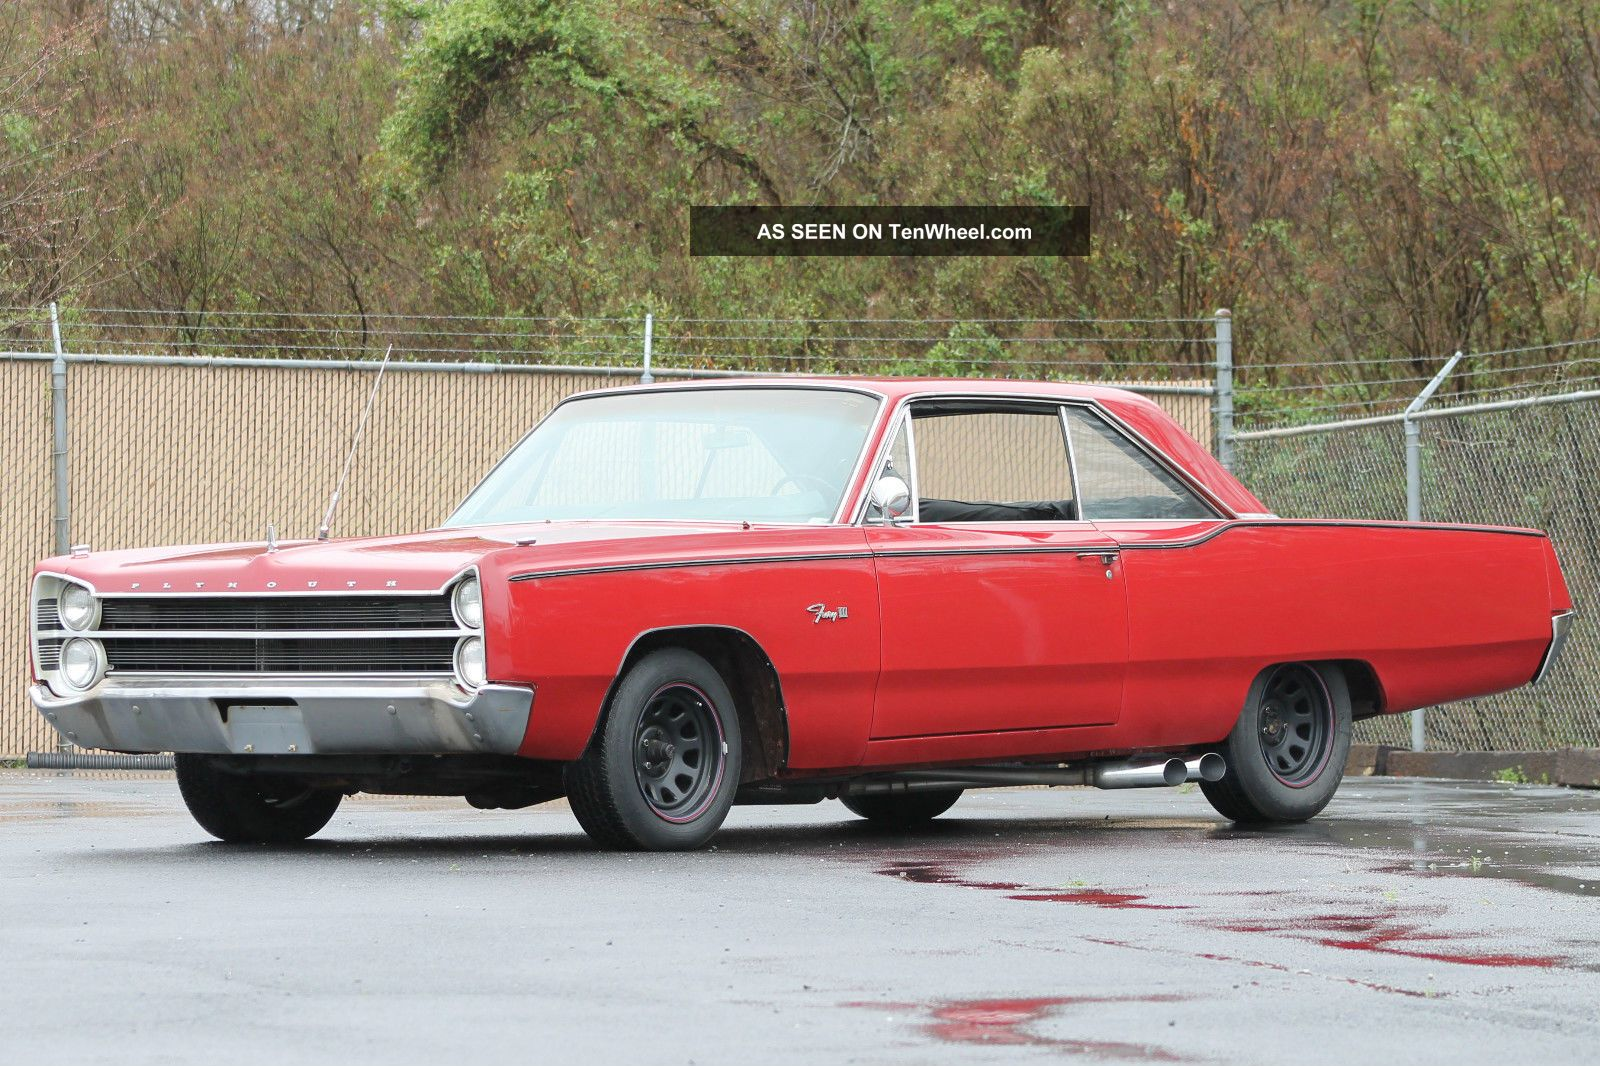 1967 Plymouth Fury Iii – 2 Door Hardtop - V8 318 Cid 2bbl - 727 Torqueflight A / T Fury photo